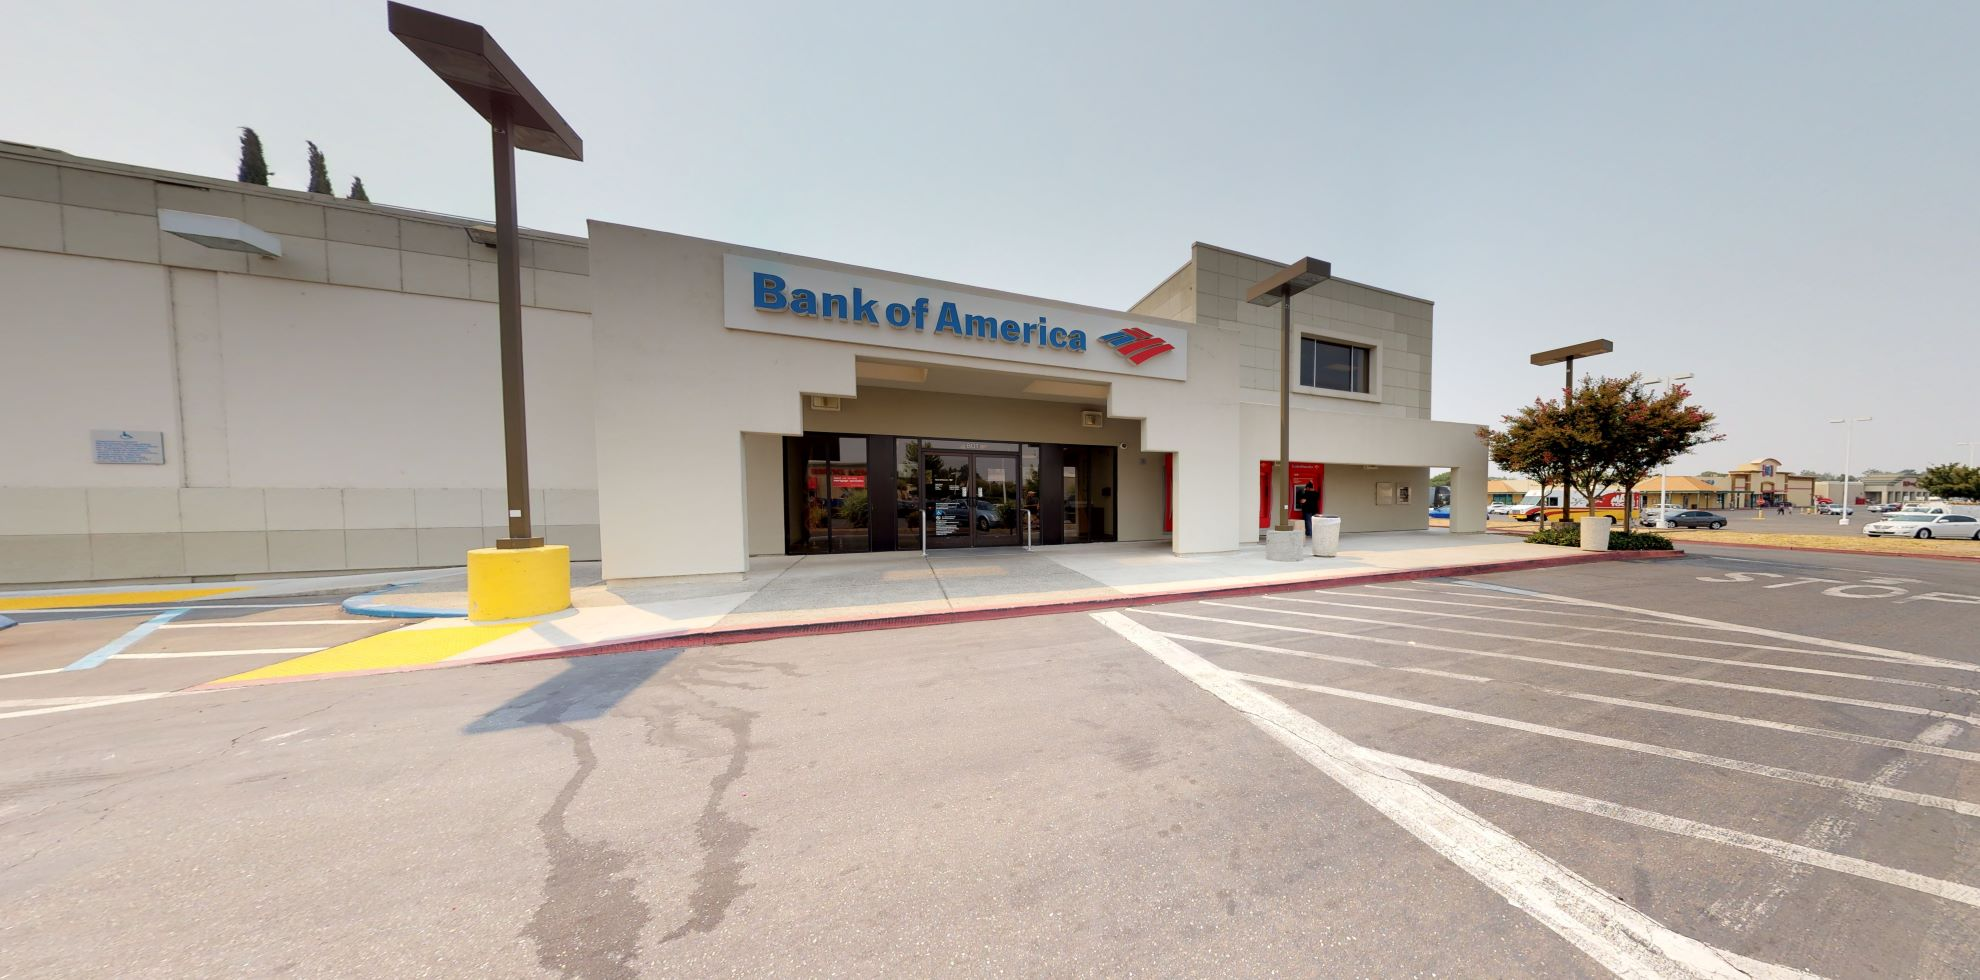 Bank of America financial center with drive-thru ATM | 801 East Ave, Chico, CA 95926